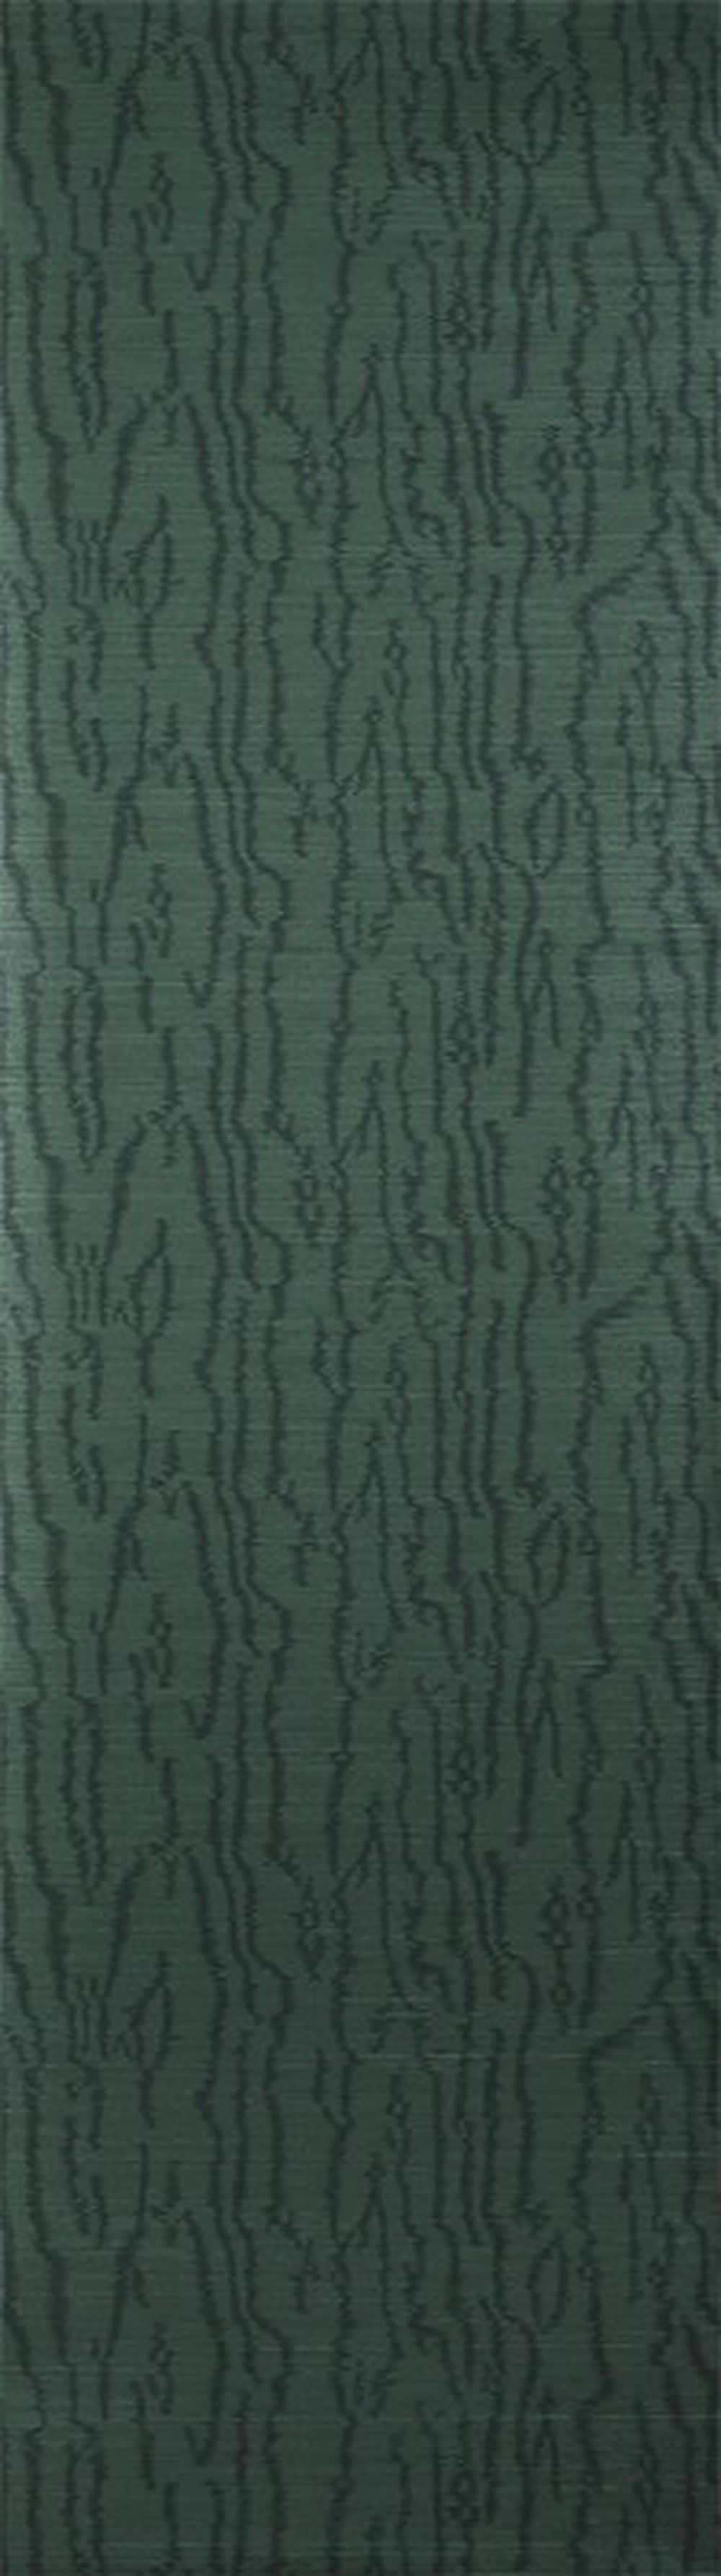 Photo of the fabric Trianon Wallpaper Emerald swatch by Catherine Martin by Mokum. Use for Wall Covering. Style of Abstract, Decorative, Pattern, Texture